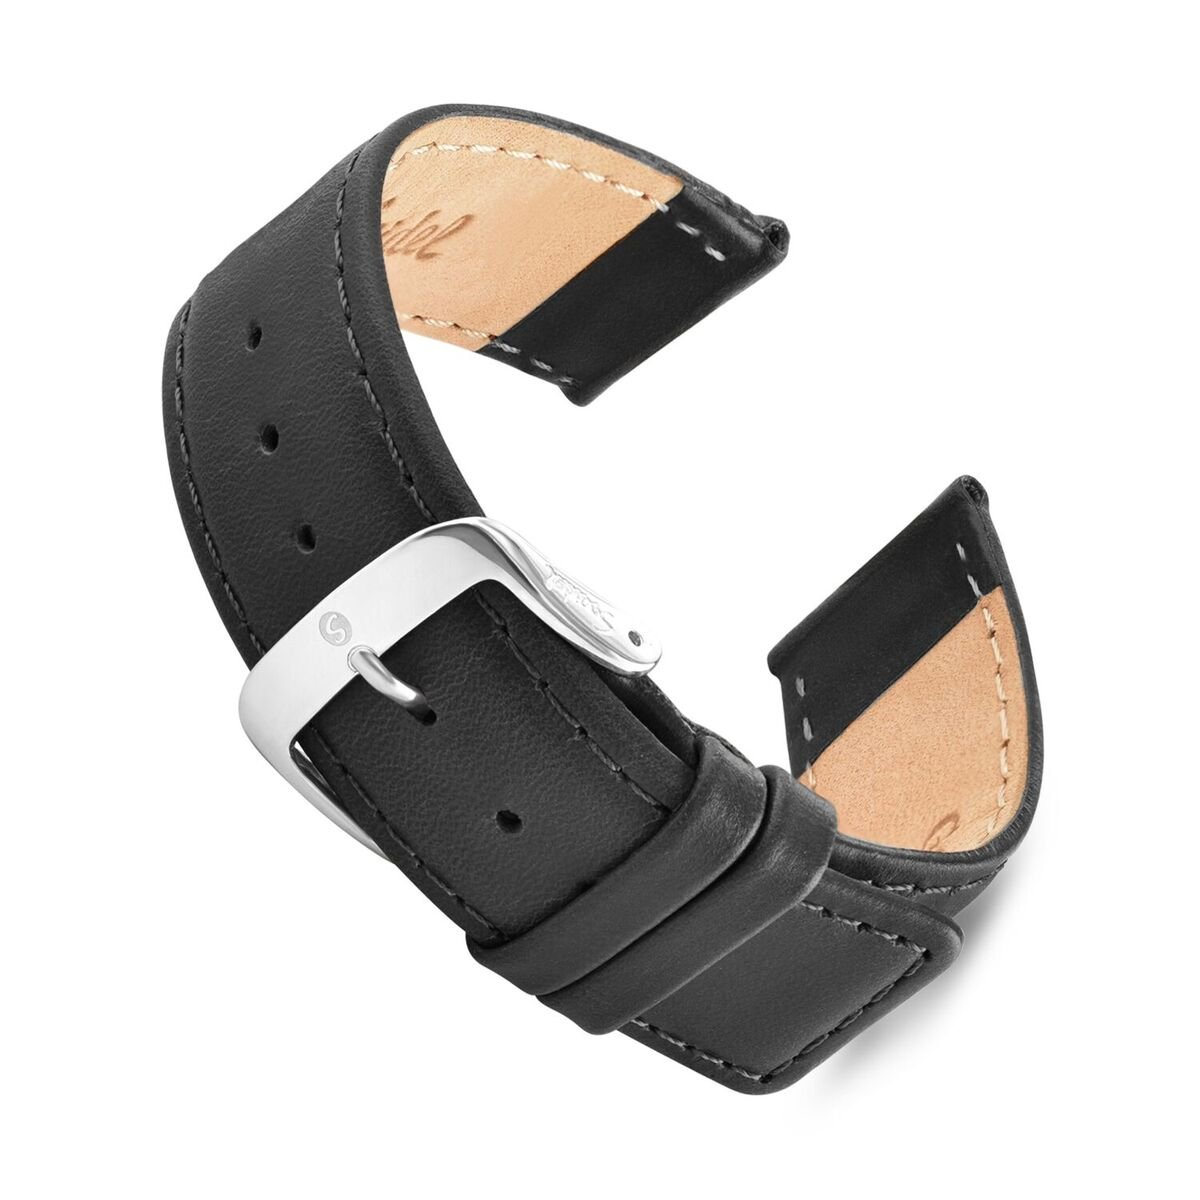 Speidel Genuine Leather Square Tip Watch Band 20mm Long Black Oiled Leather Replacement Strap, Stainless Steel Metal Buckle Clasp, Watchband Fits Most Watch Brands